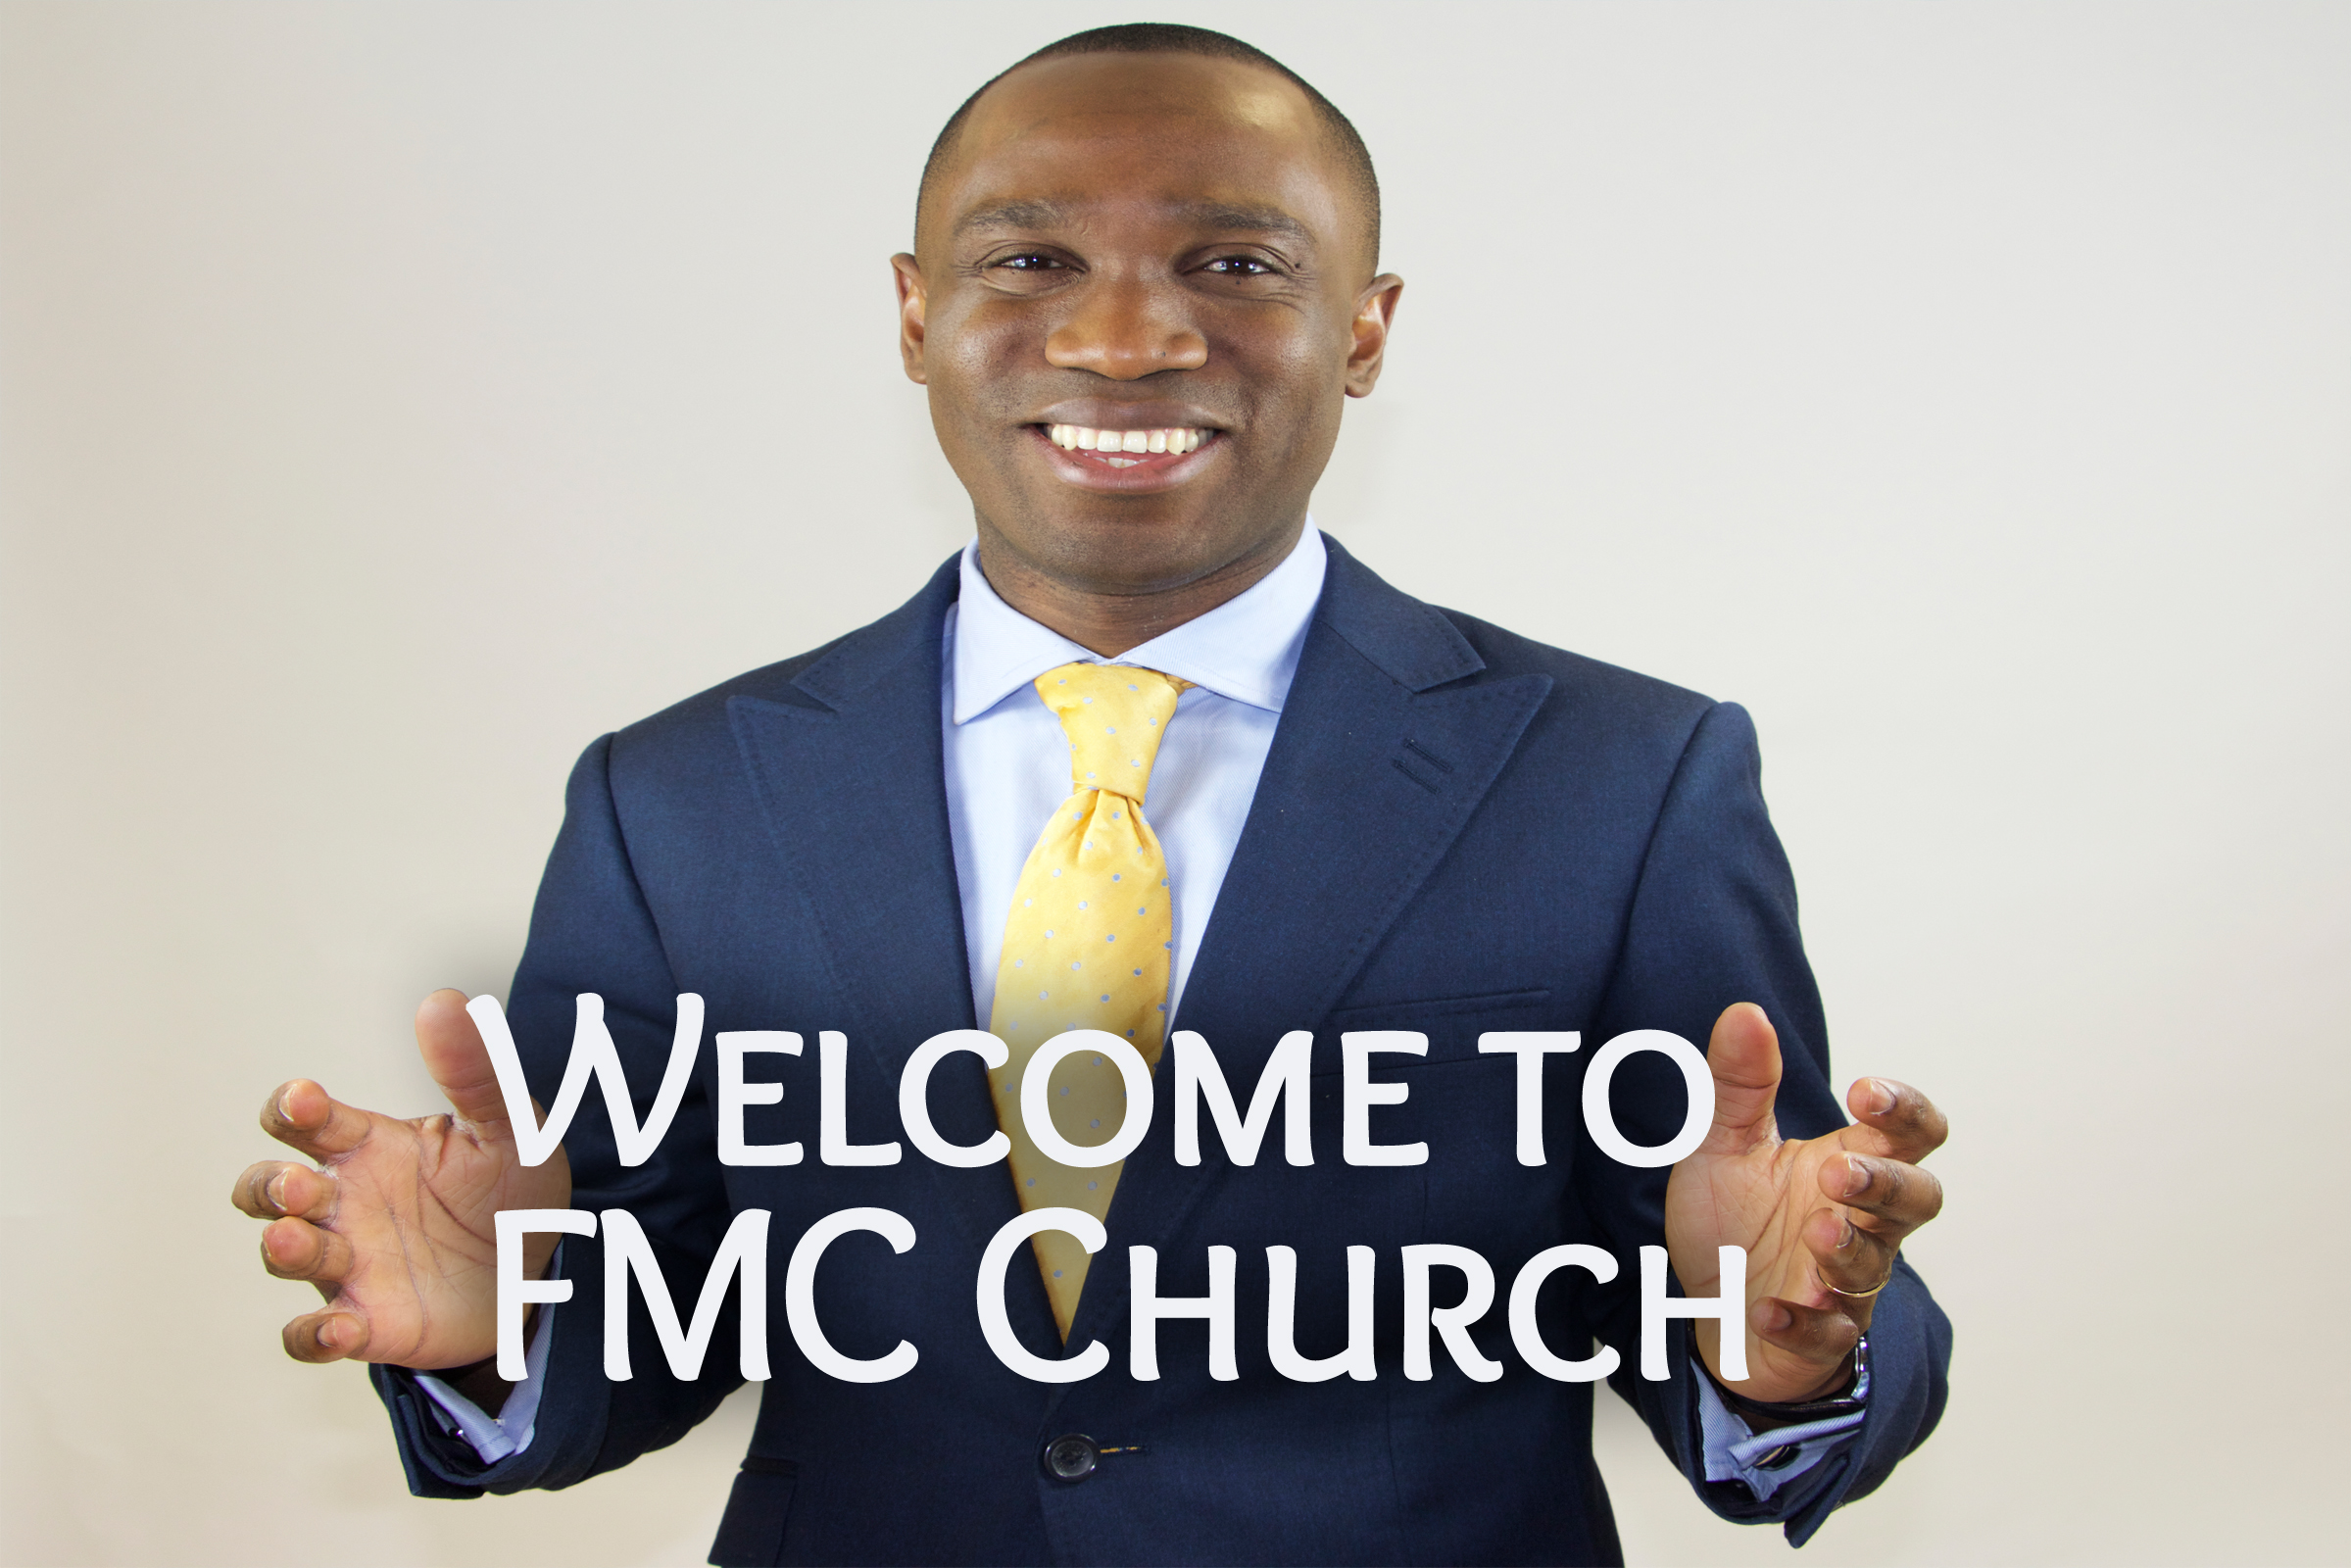 Welcome to FMC Church - Pastor Moses Omoviye